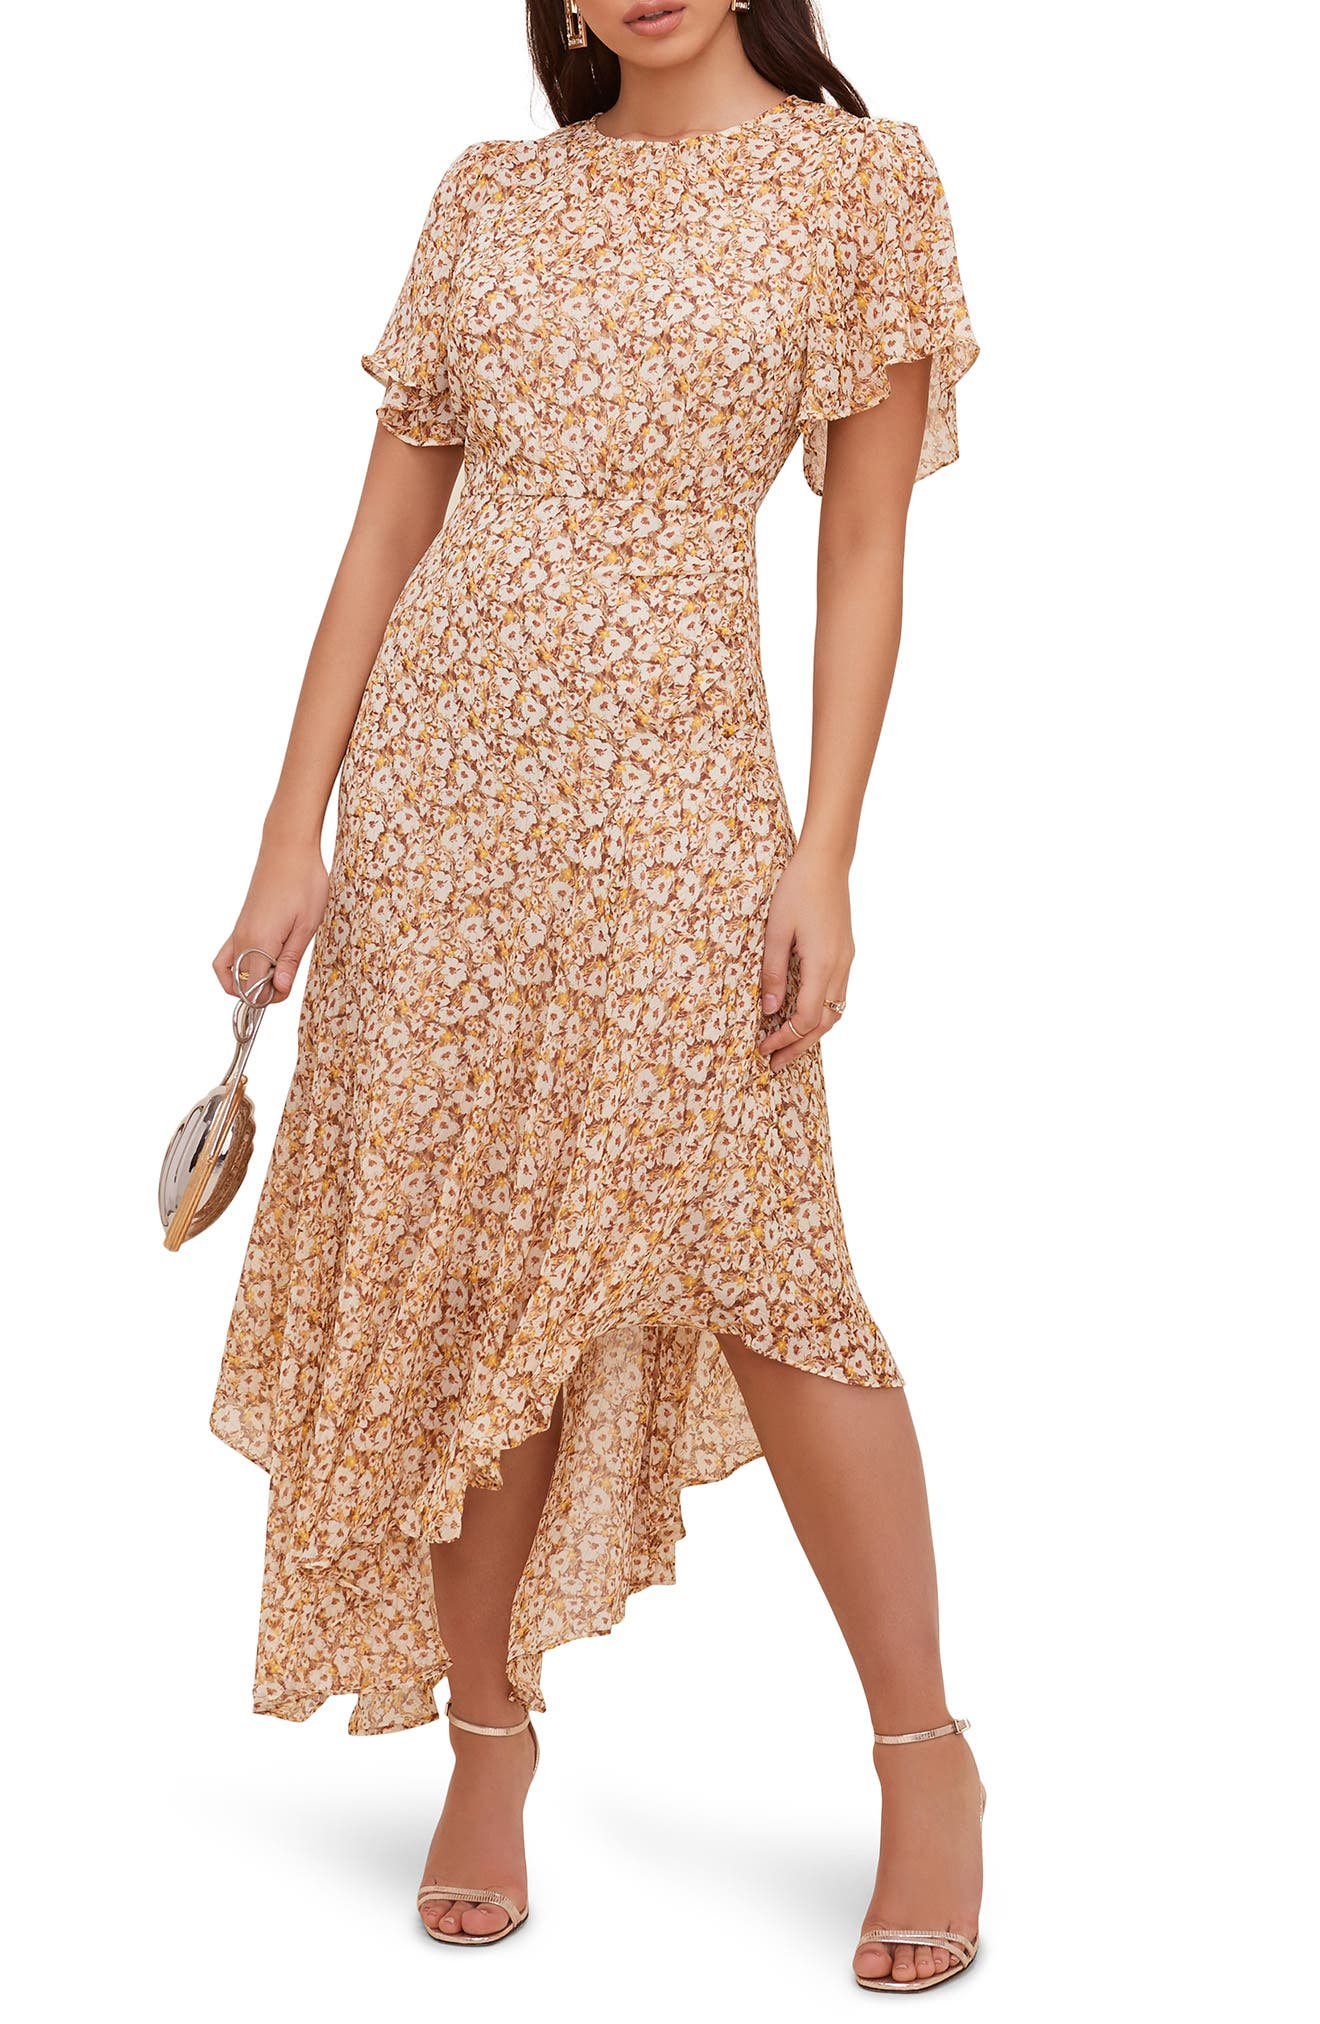 NREALY Falda Womens Plus Size Casual Short Sleeve Cold Shoulder Boho Flower Print Long Dress